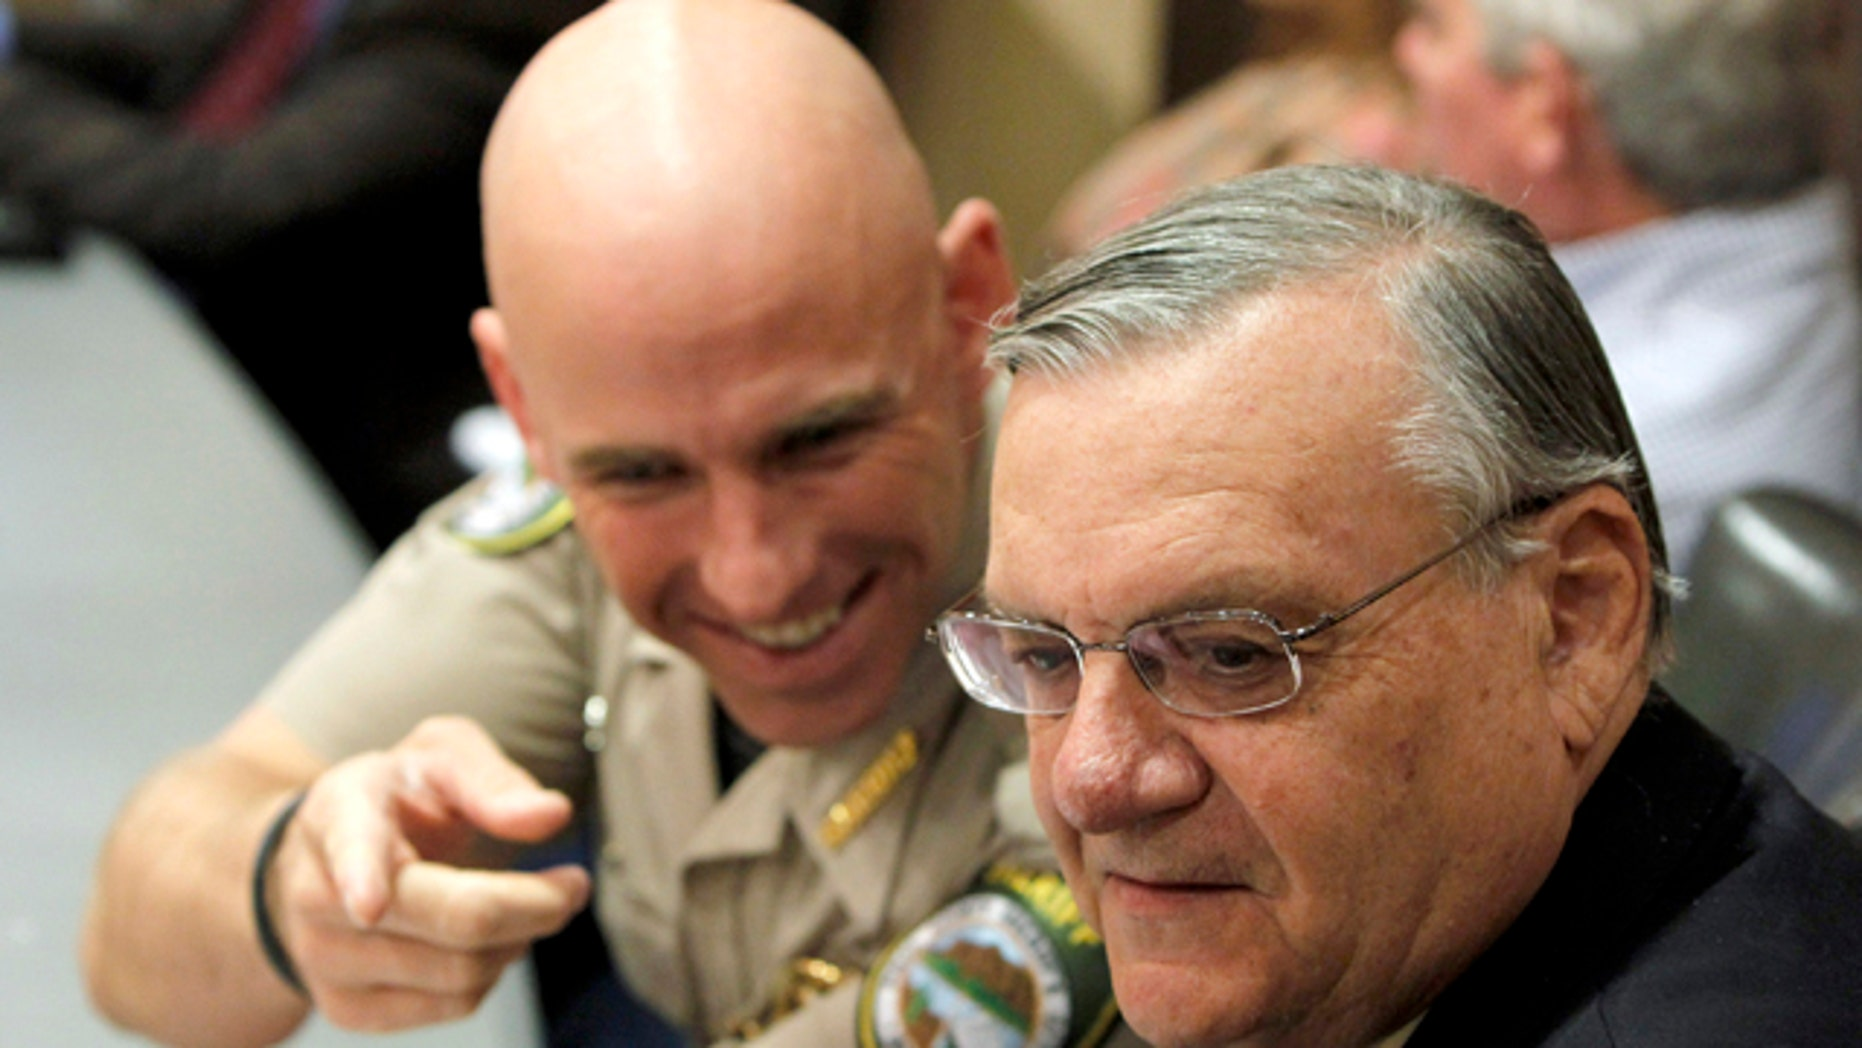 Pinal County Sheriff Paul Babeu, left, talks with Maricopa County Sheriff Joe Arpaio during a meeting last year. In response to a letter from three local mayors asking him to tone down his rhetoric, Babeu said his jurisdiction is the 'number one pass through county' nationwide for smuggling people and drugs. (AP)